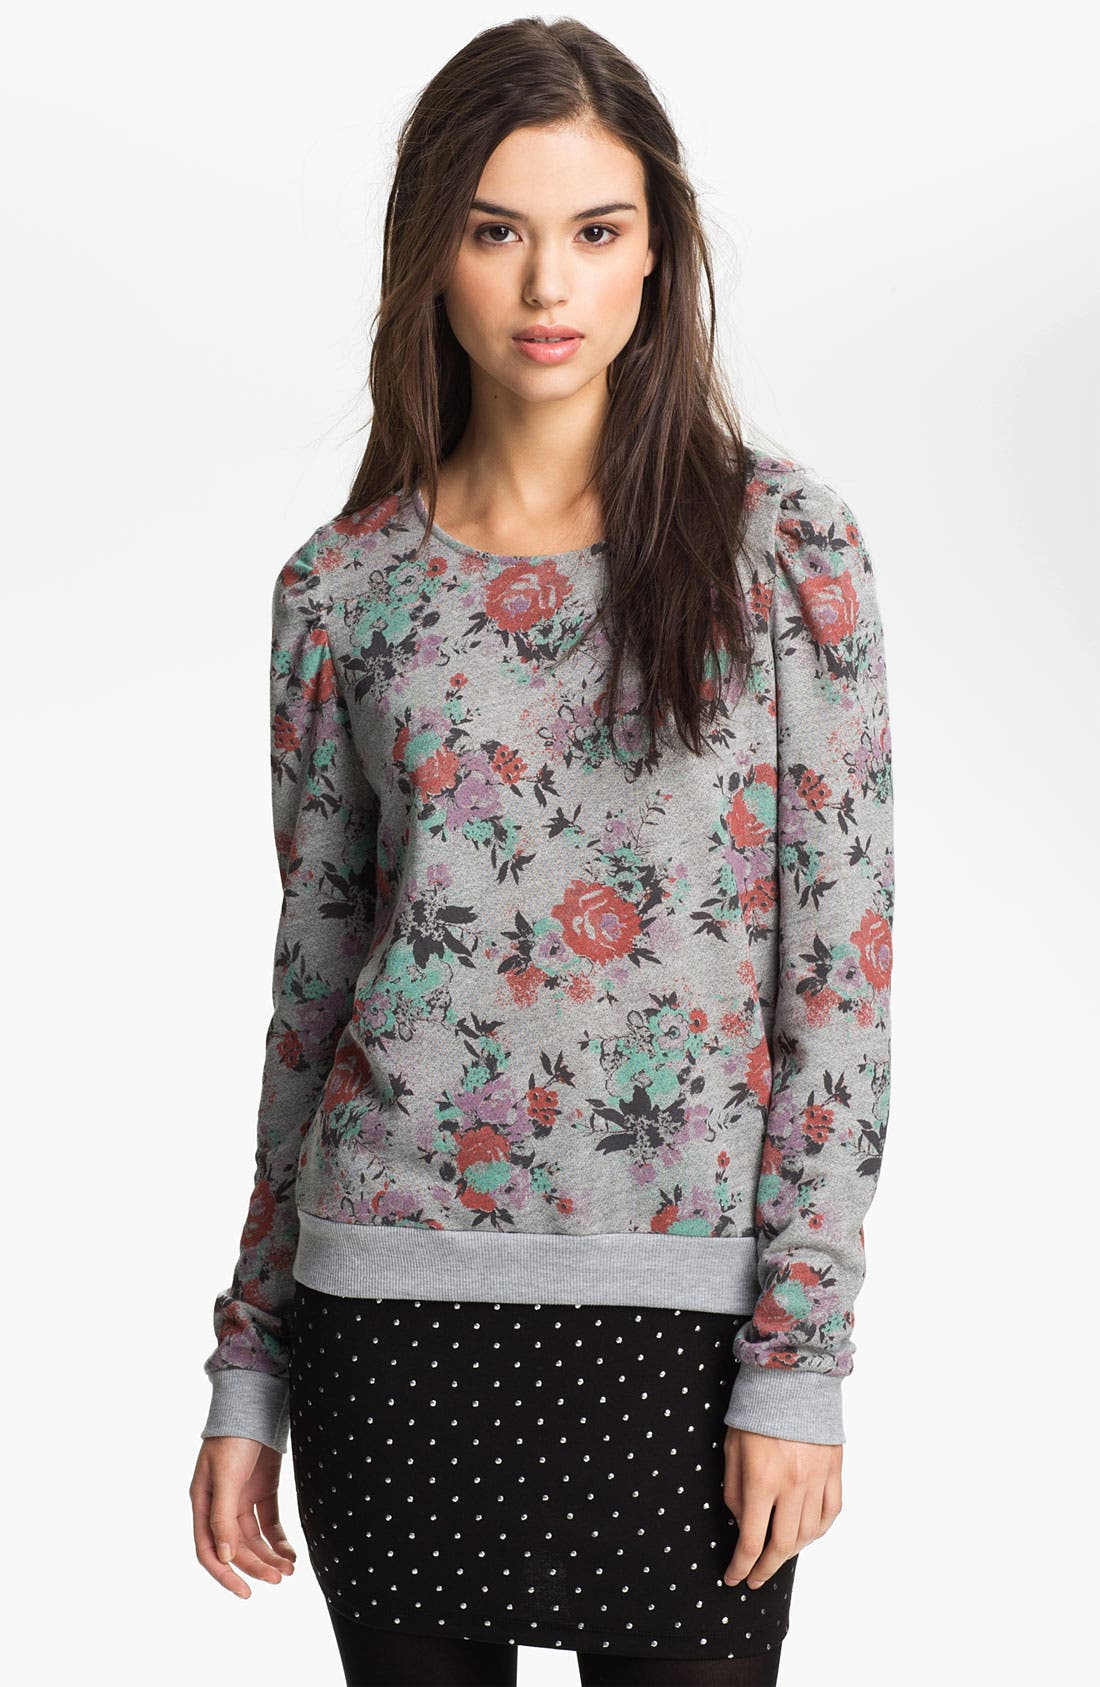 Alternate Image 1 Selected - Ten Sixty Sherman Puff Sleeve Sweatshirt (Juniors)